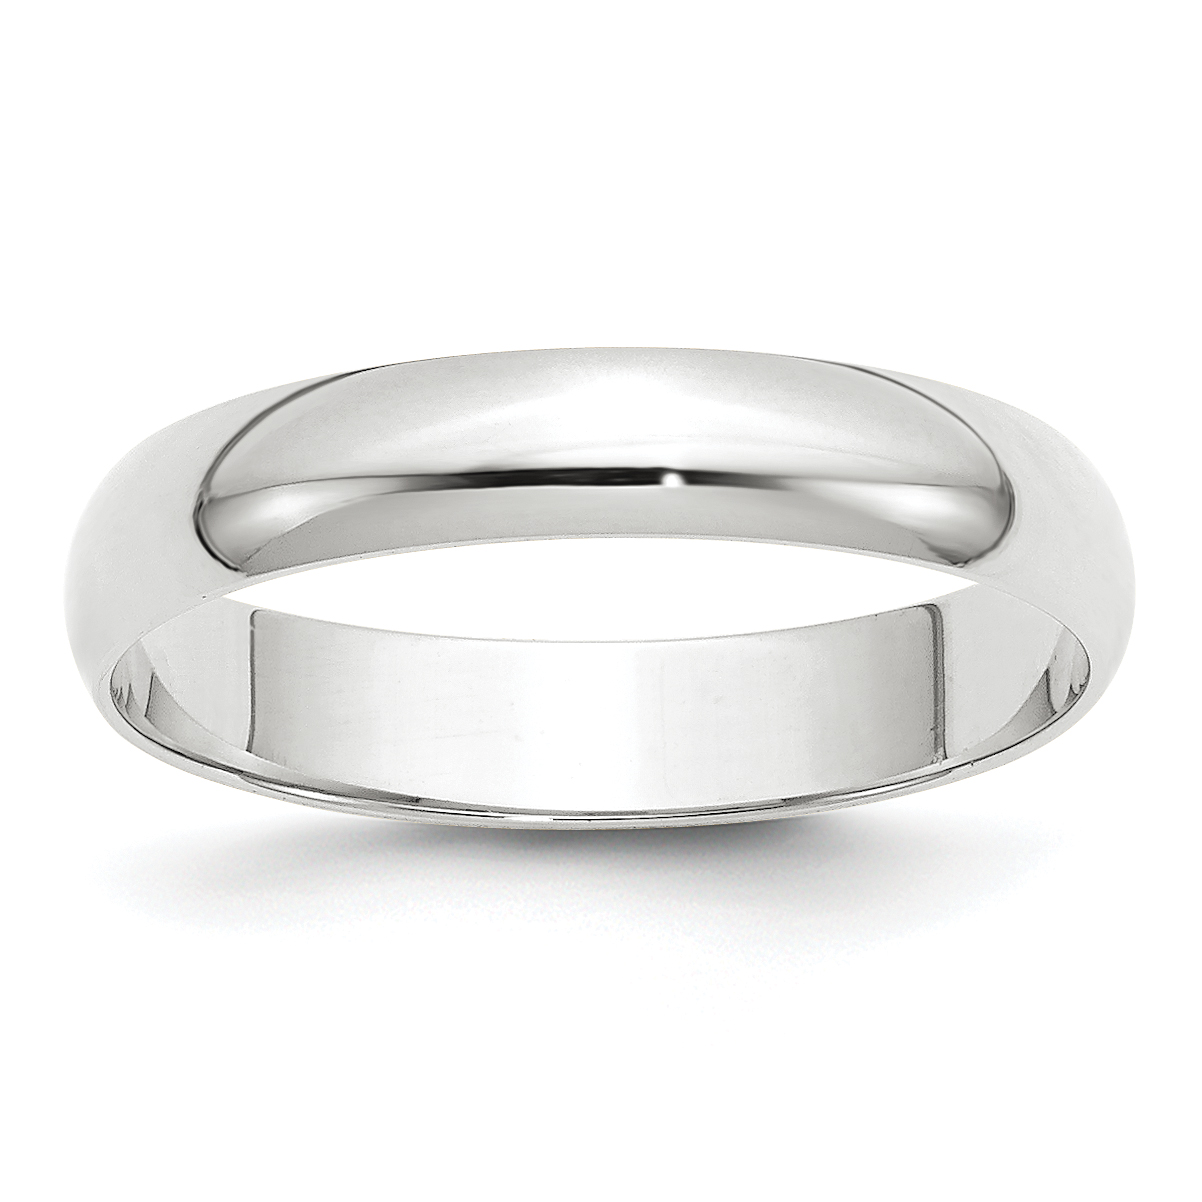 10KY 8mm LTW Half Round Band Size 5.5 Size 5.5 Length Width 8